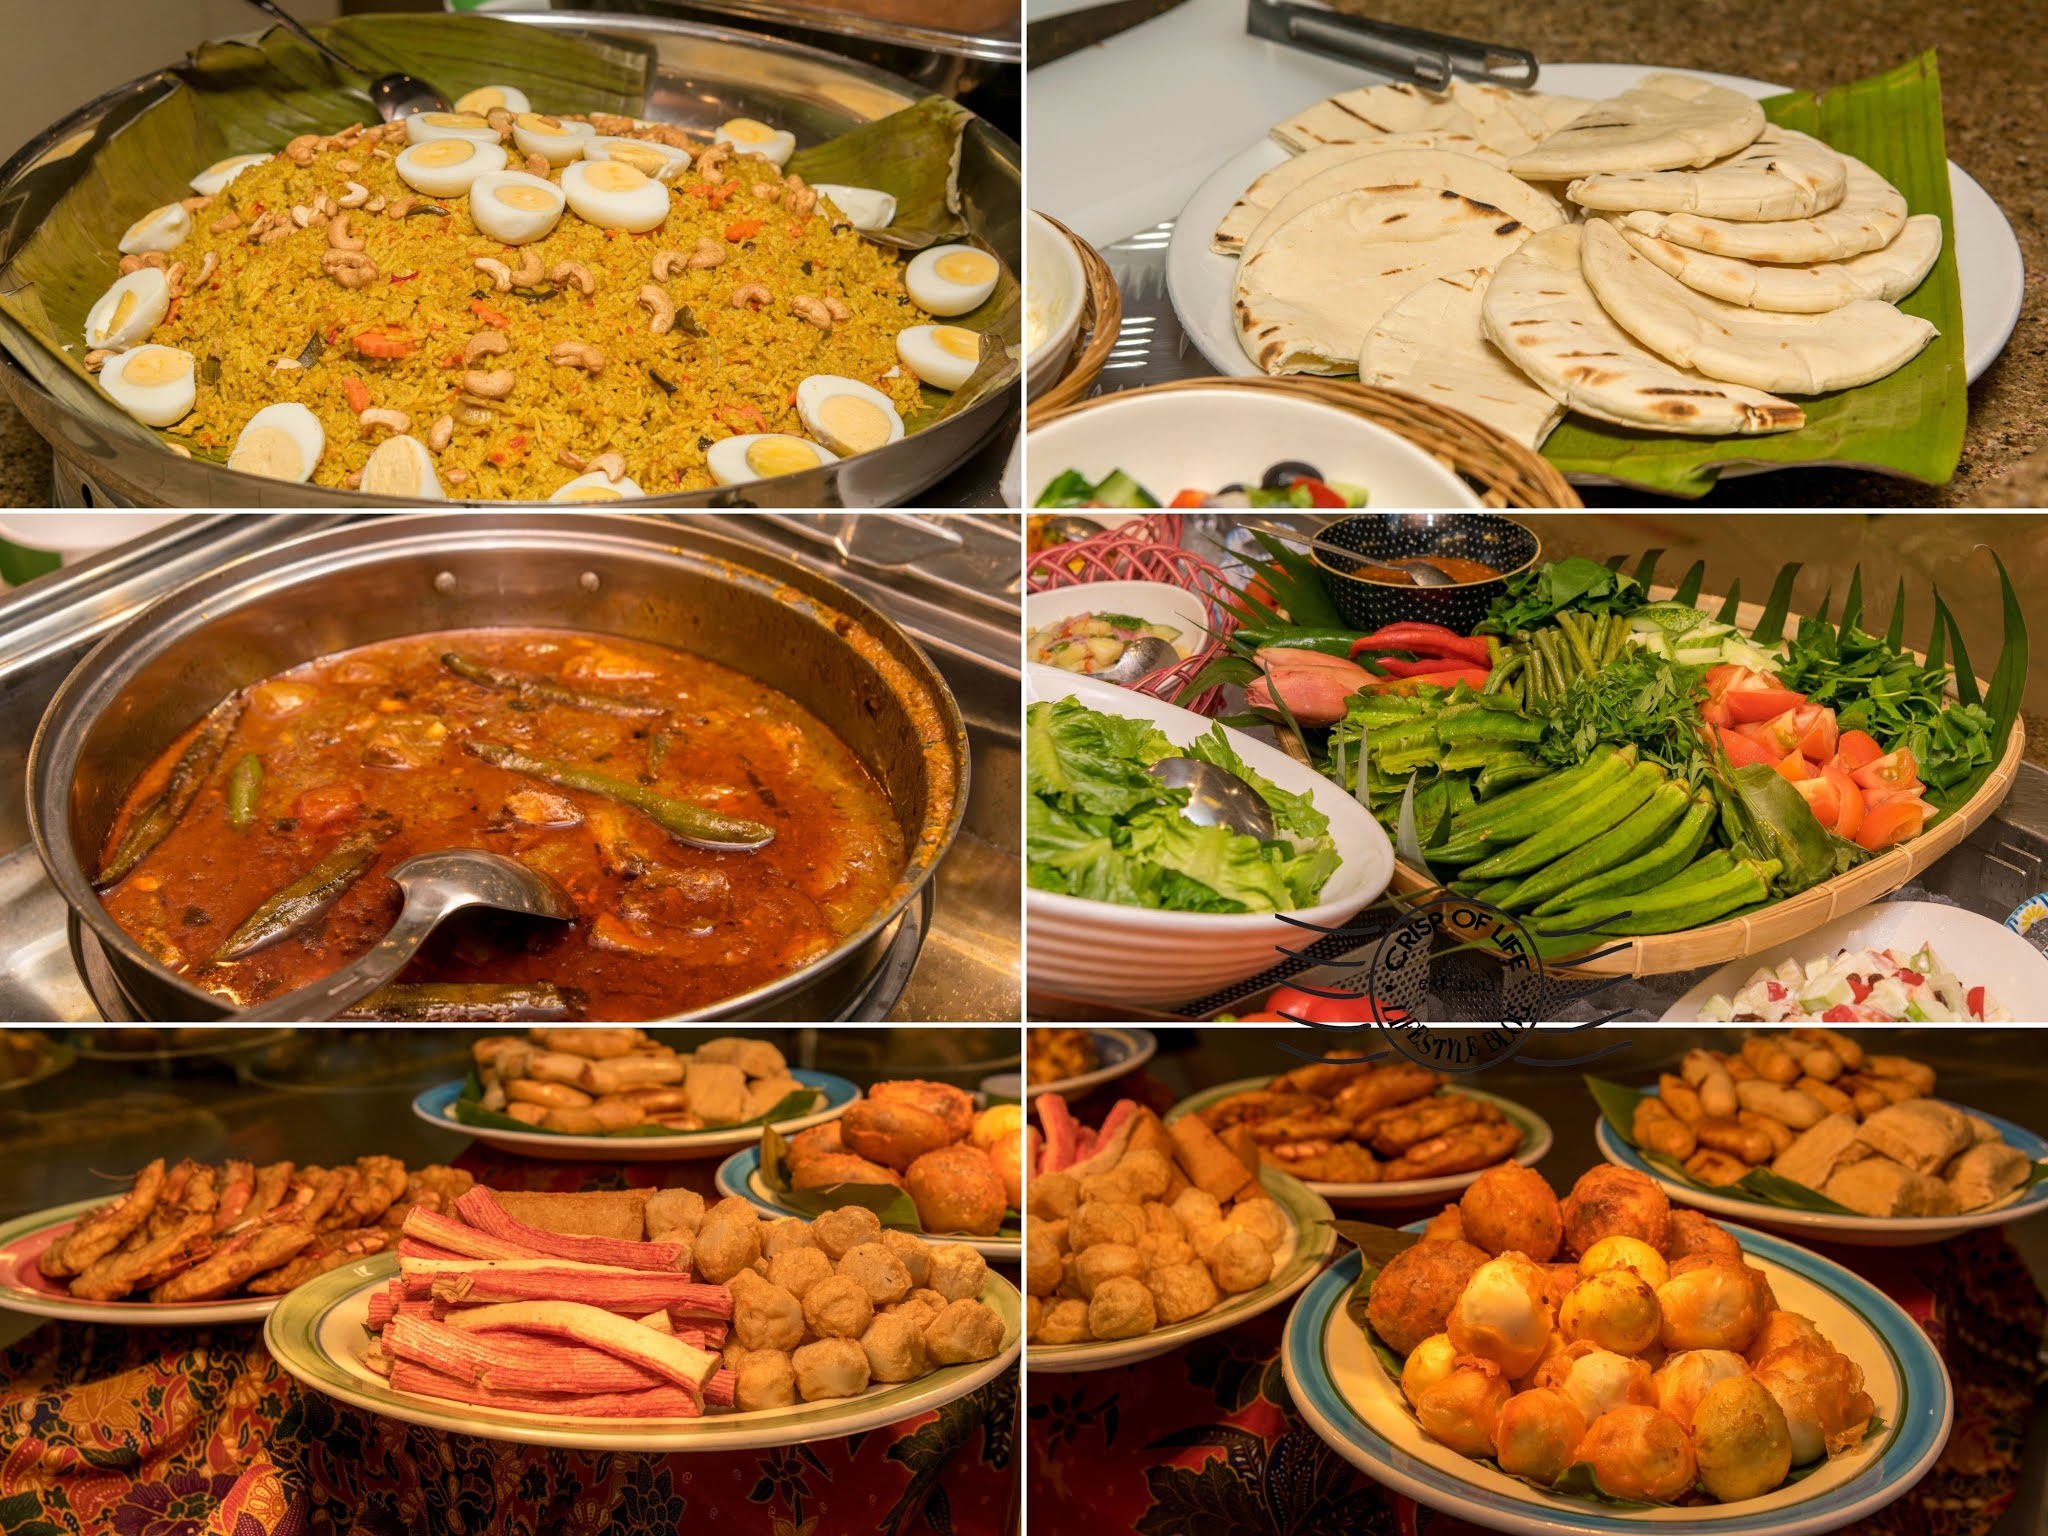 Eat-All-You-Can Selera Kampung Buy 1 Free 1 Every Sunday - Thursday RM 64 nett per adult @ Golden Sands Resort, Penang